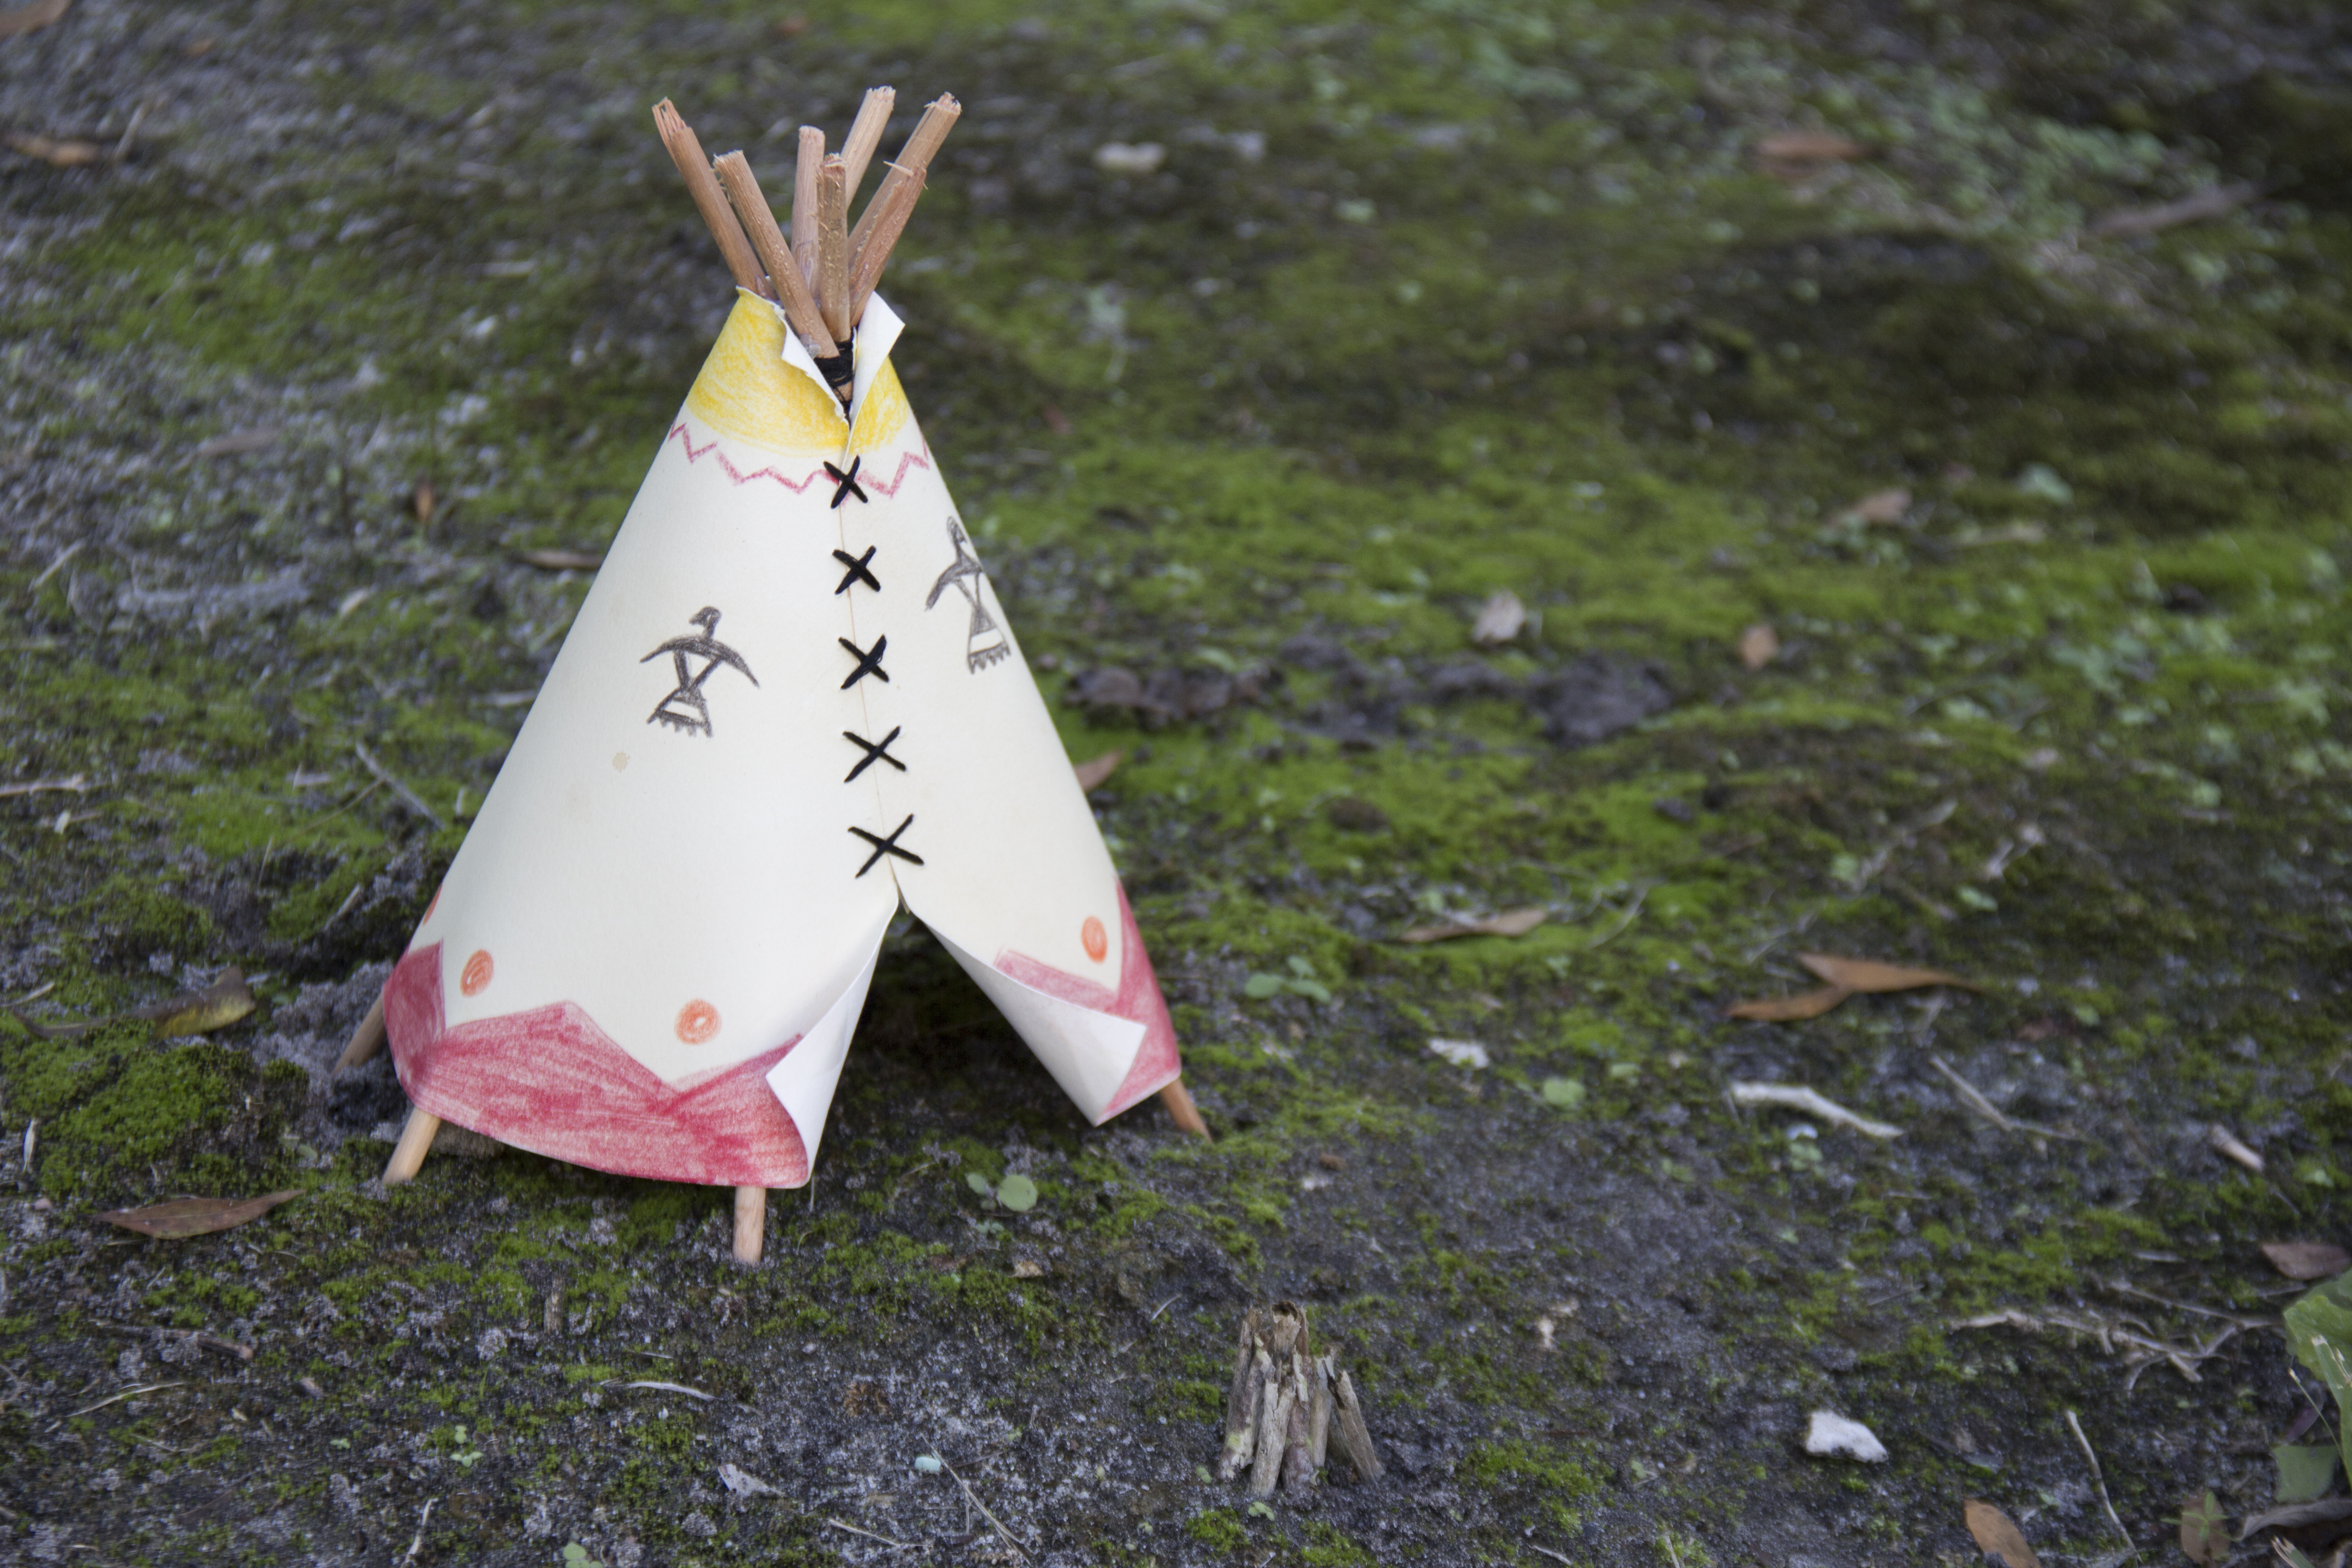 How To Build A Teepee For A School Project Synonym